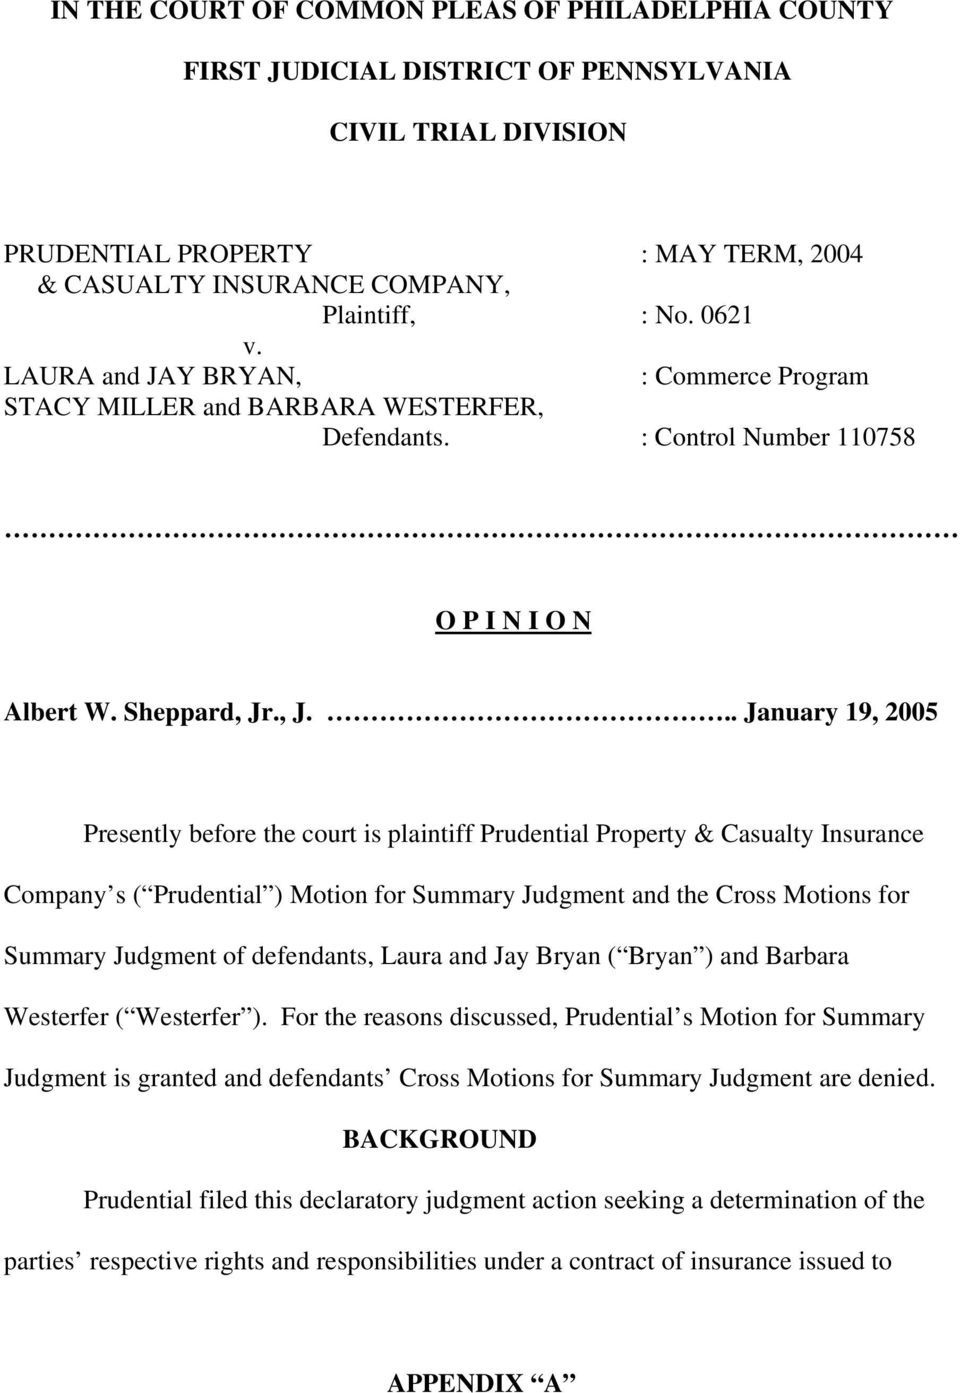 ., J... January 19, 2005 Presently before the court is plaintiff Prudential Property & Casualty Insurance Company s ( Prudential ) Motion for Summary Judgment and the Cross Motions for Summary